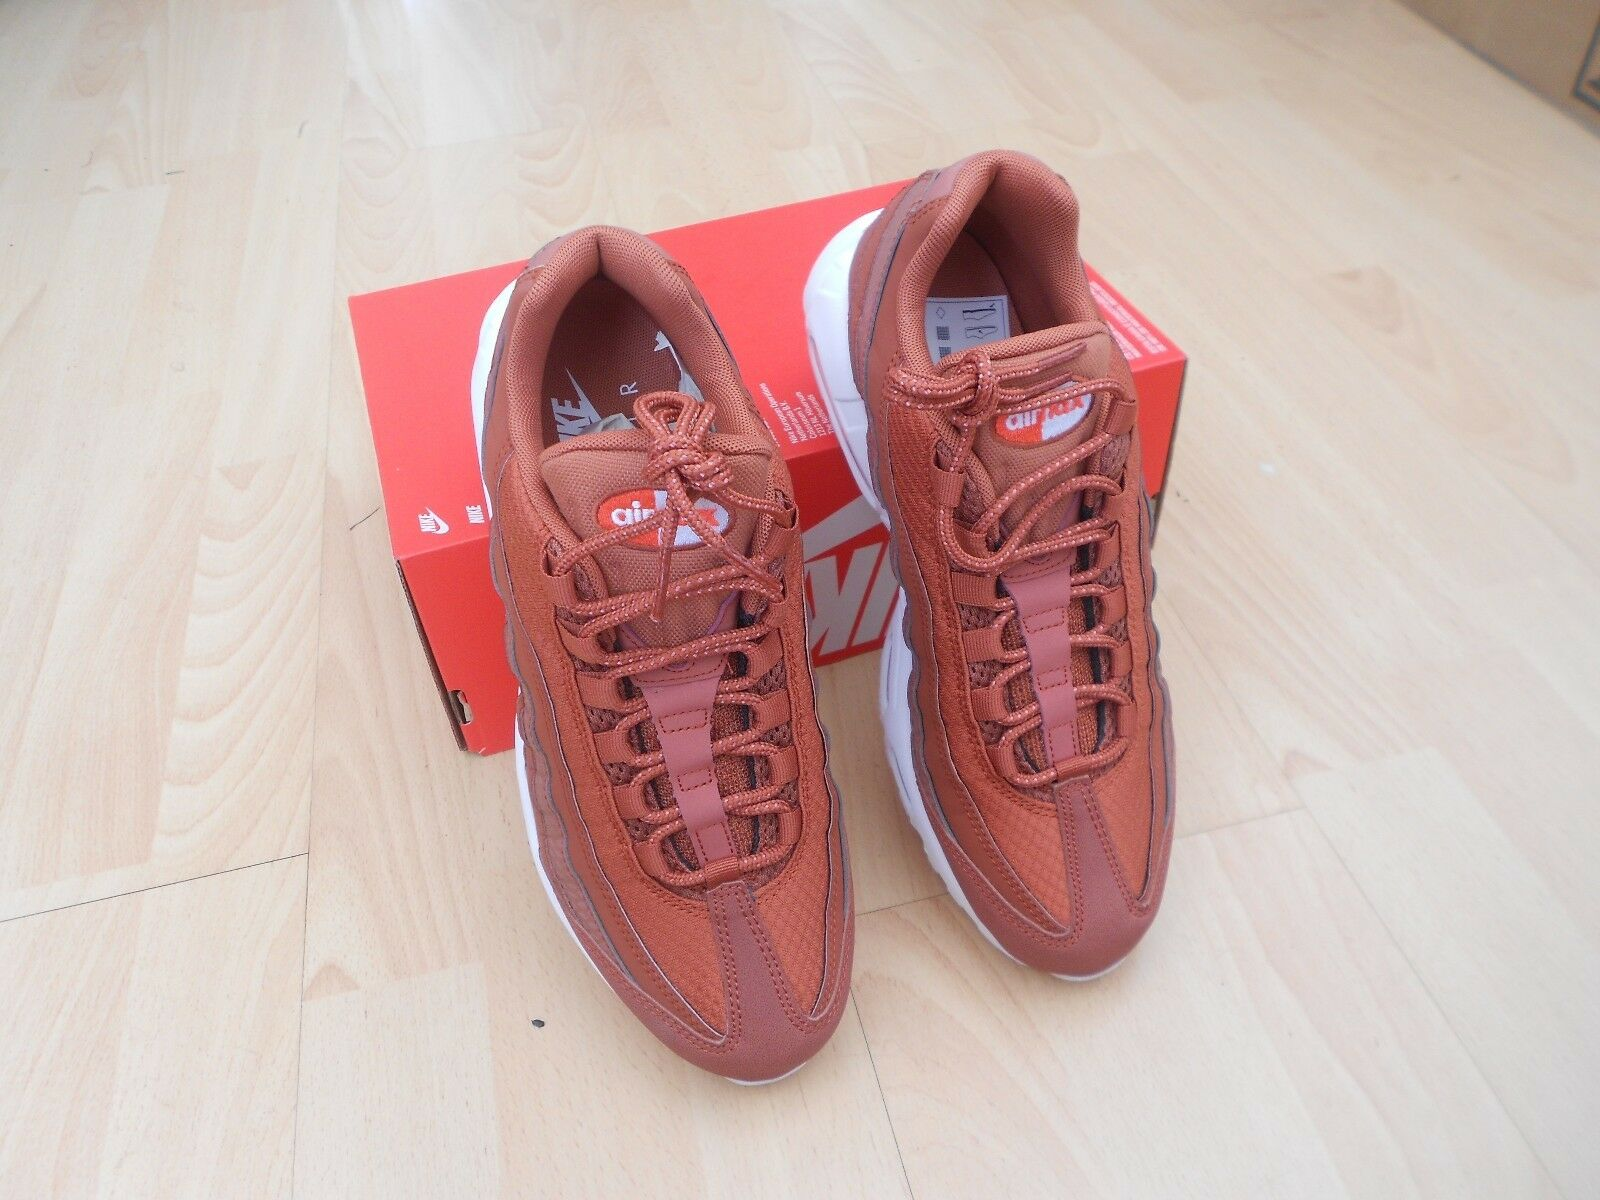 BNWOB NIKE  AIR MAX 95 PRM SE TRAINERS - UK Taille 7 - DUSTY PEACH & blanc